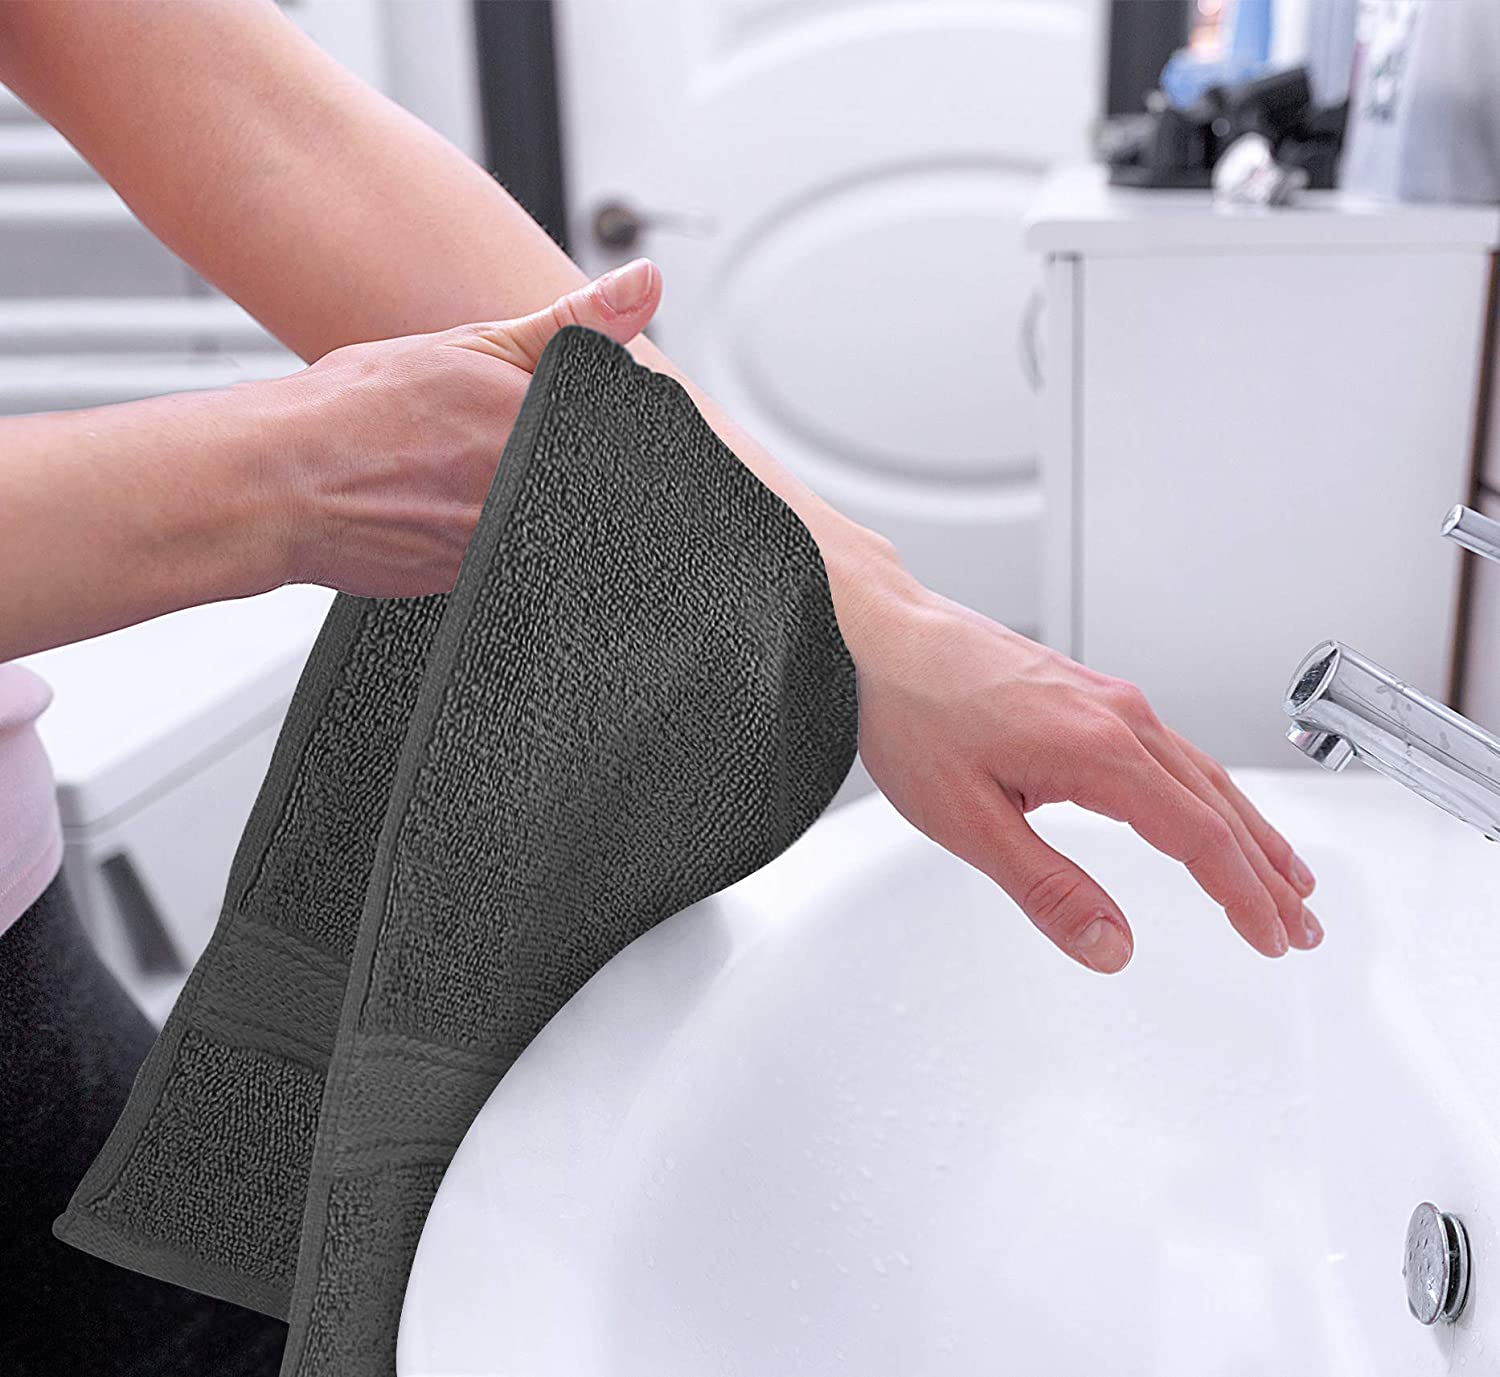 Utopia Towels Premium Grey Hand Towels - 100% Combed Ring Spun Cotton, Ultra Soft and Highly Absorbent, 600 GSM Exrta Large Hand Towels 16 x 28 inches, Hotel & Spa Quality Hand Towels (6-Pack): Home & Kitchen